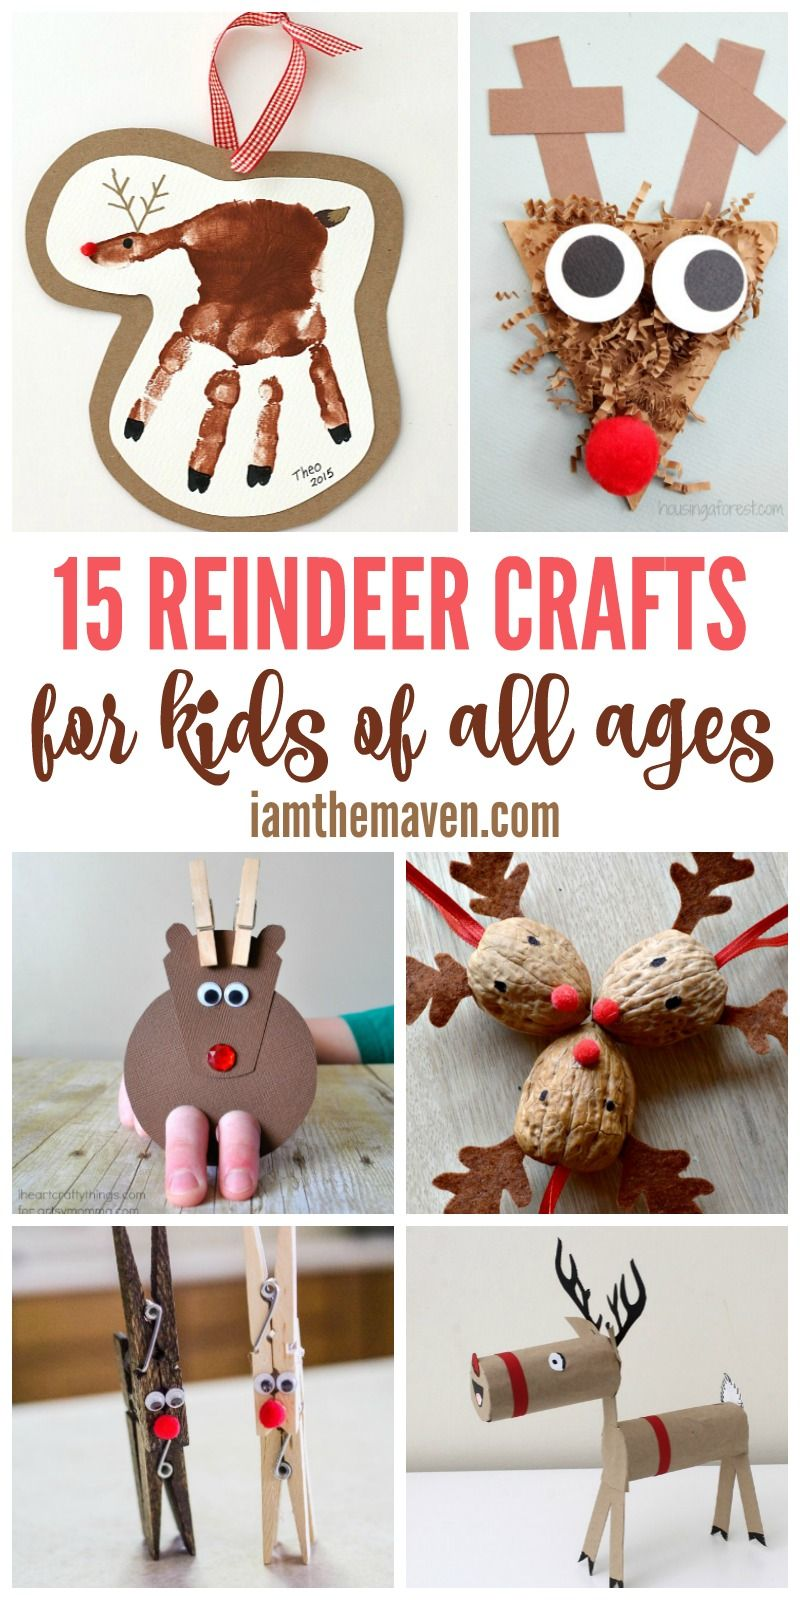 Here are some fun reindeer crafts!